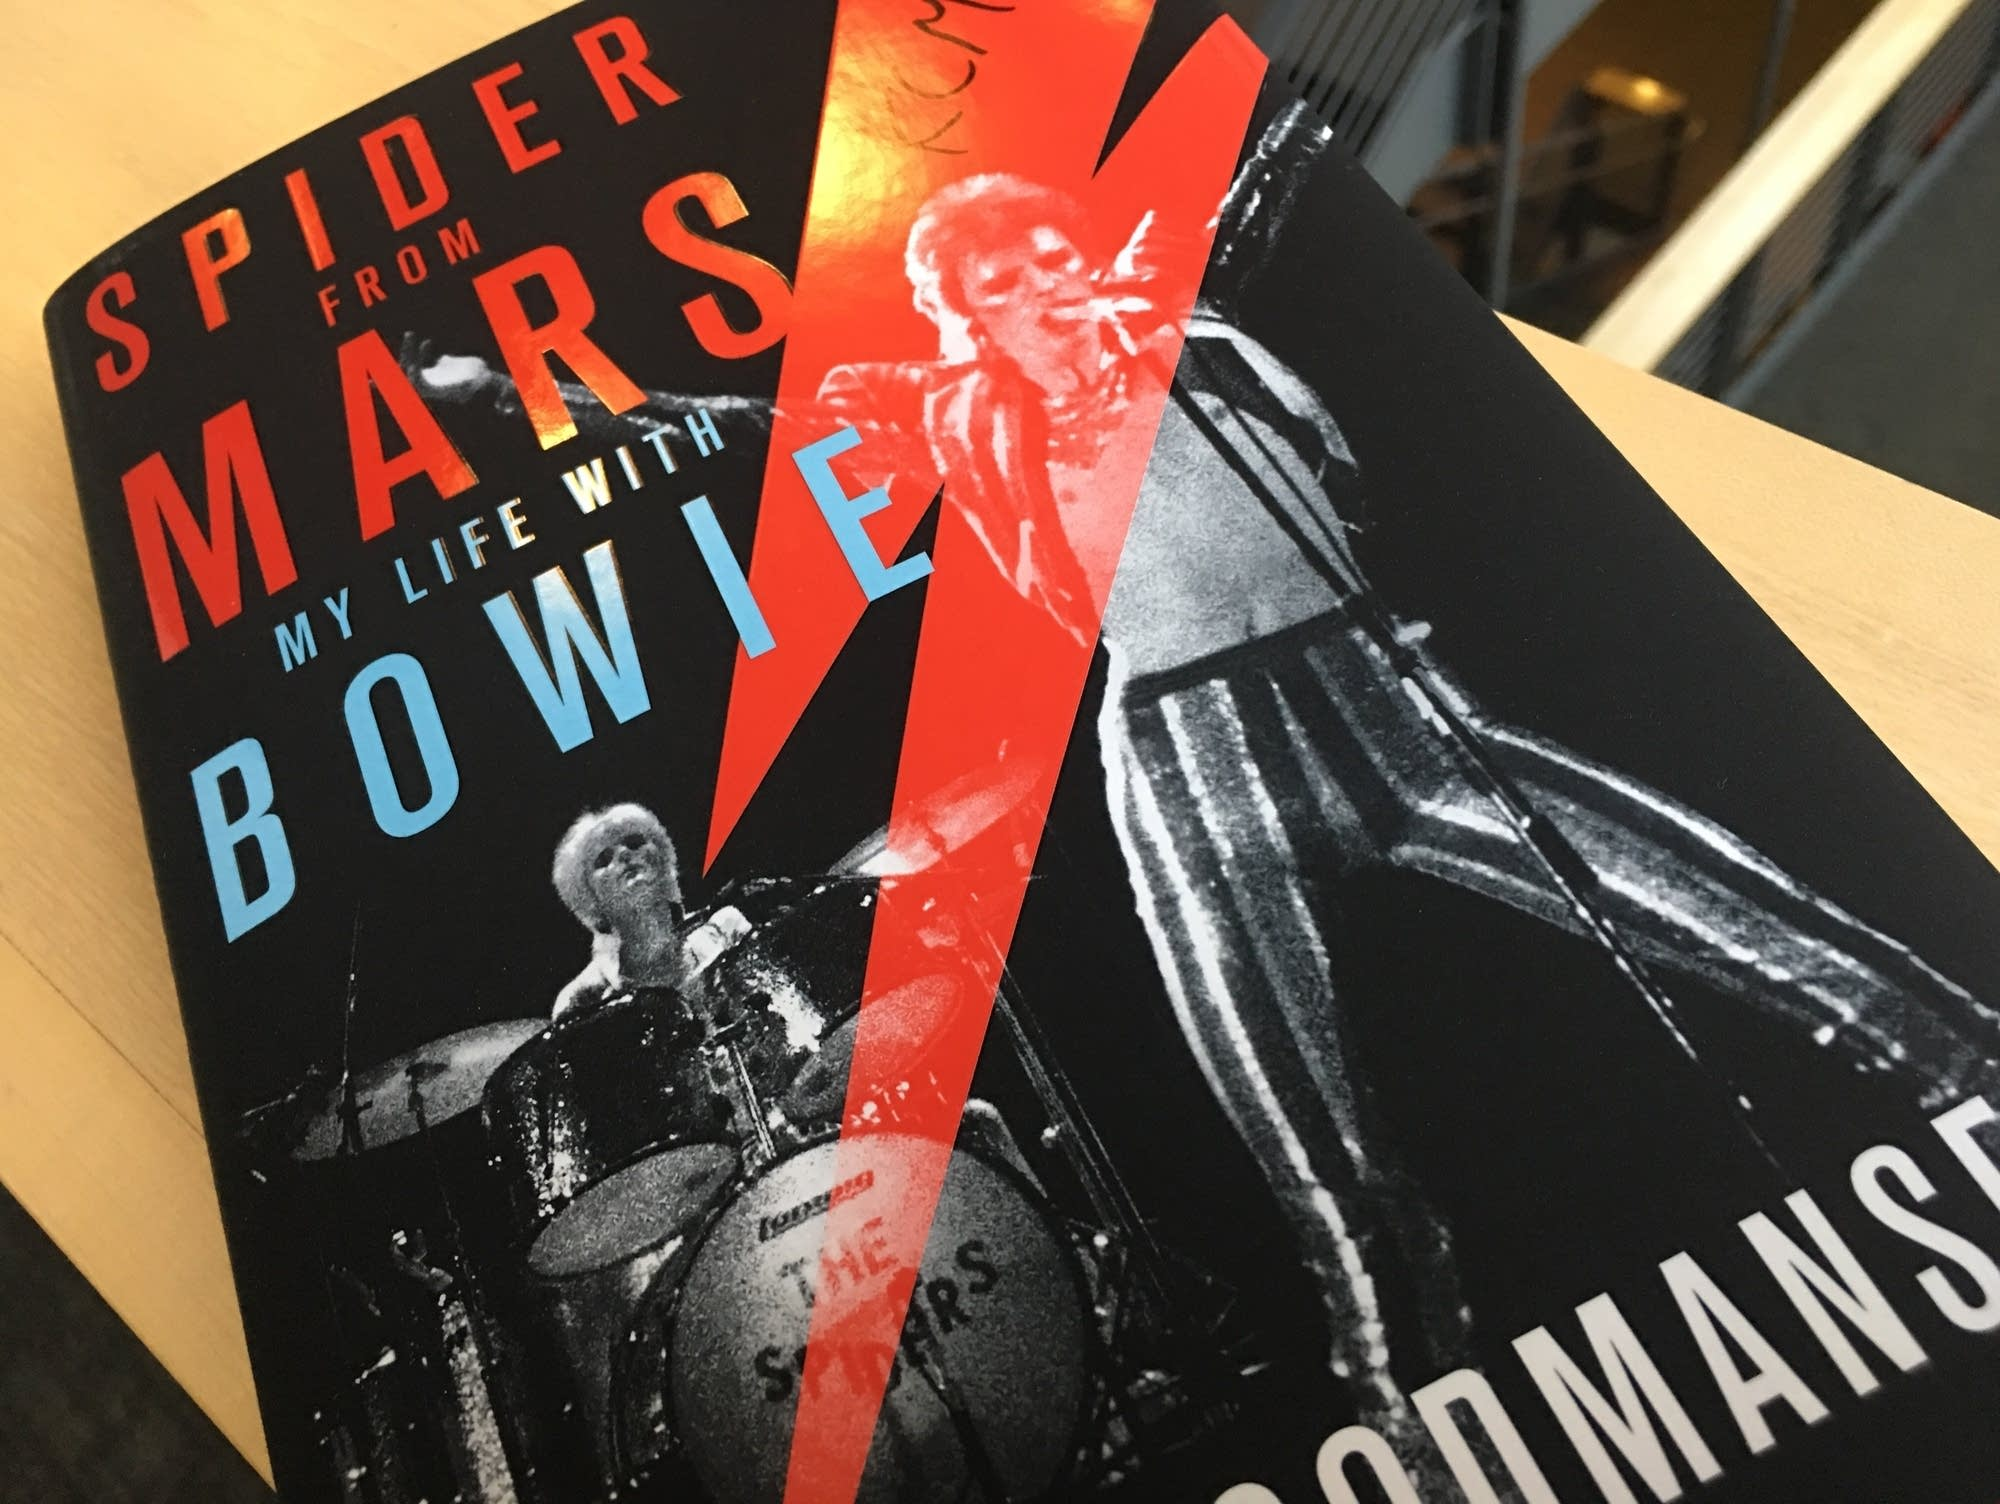 Rock and Roll Book Club: Woody Woodmansey's 'Spider from